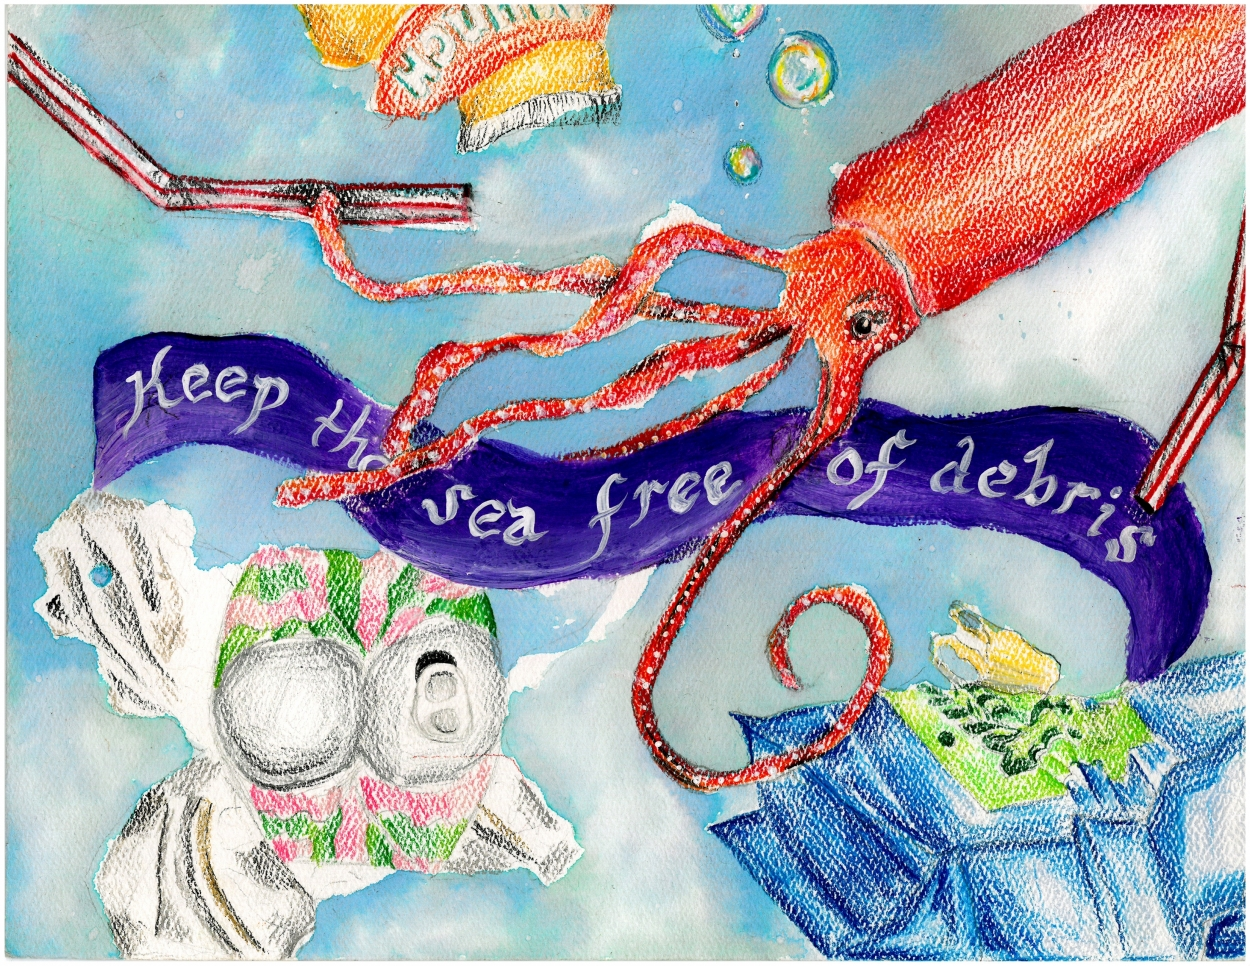 Drawing of red squid with debris around it and a purple banner that reads'Keep the sea free of debris'.